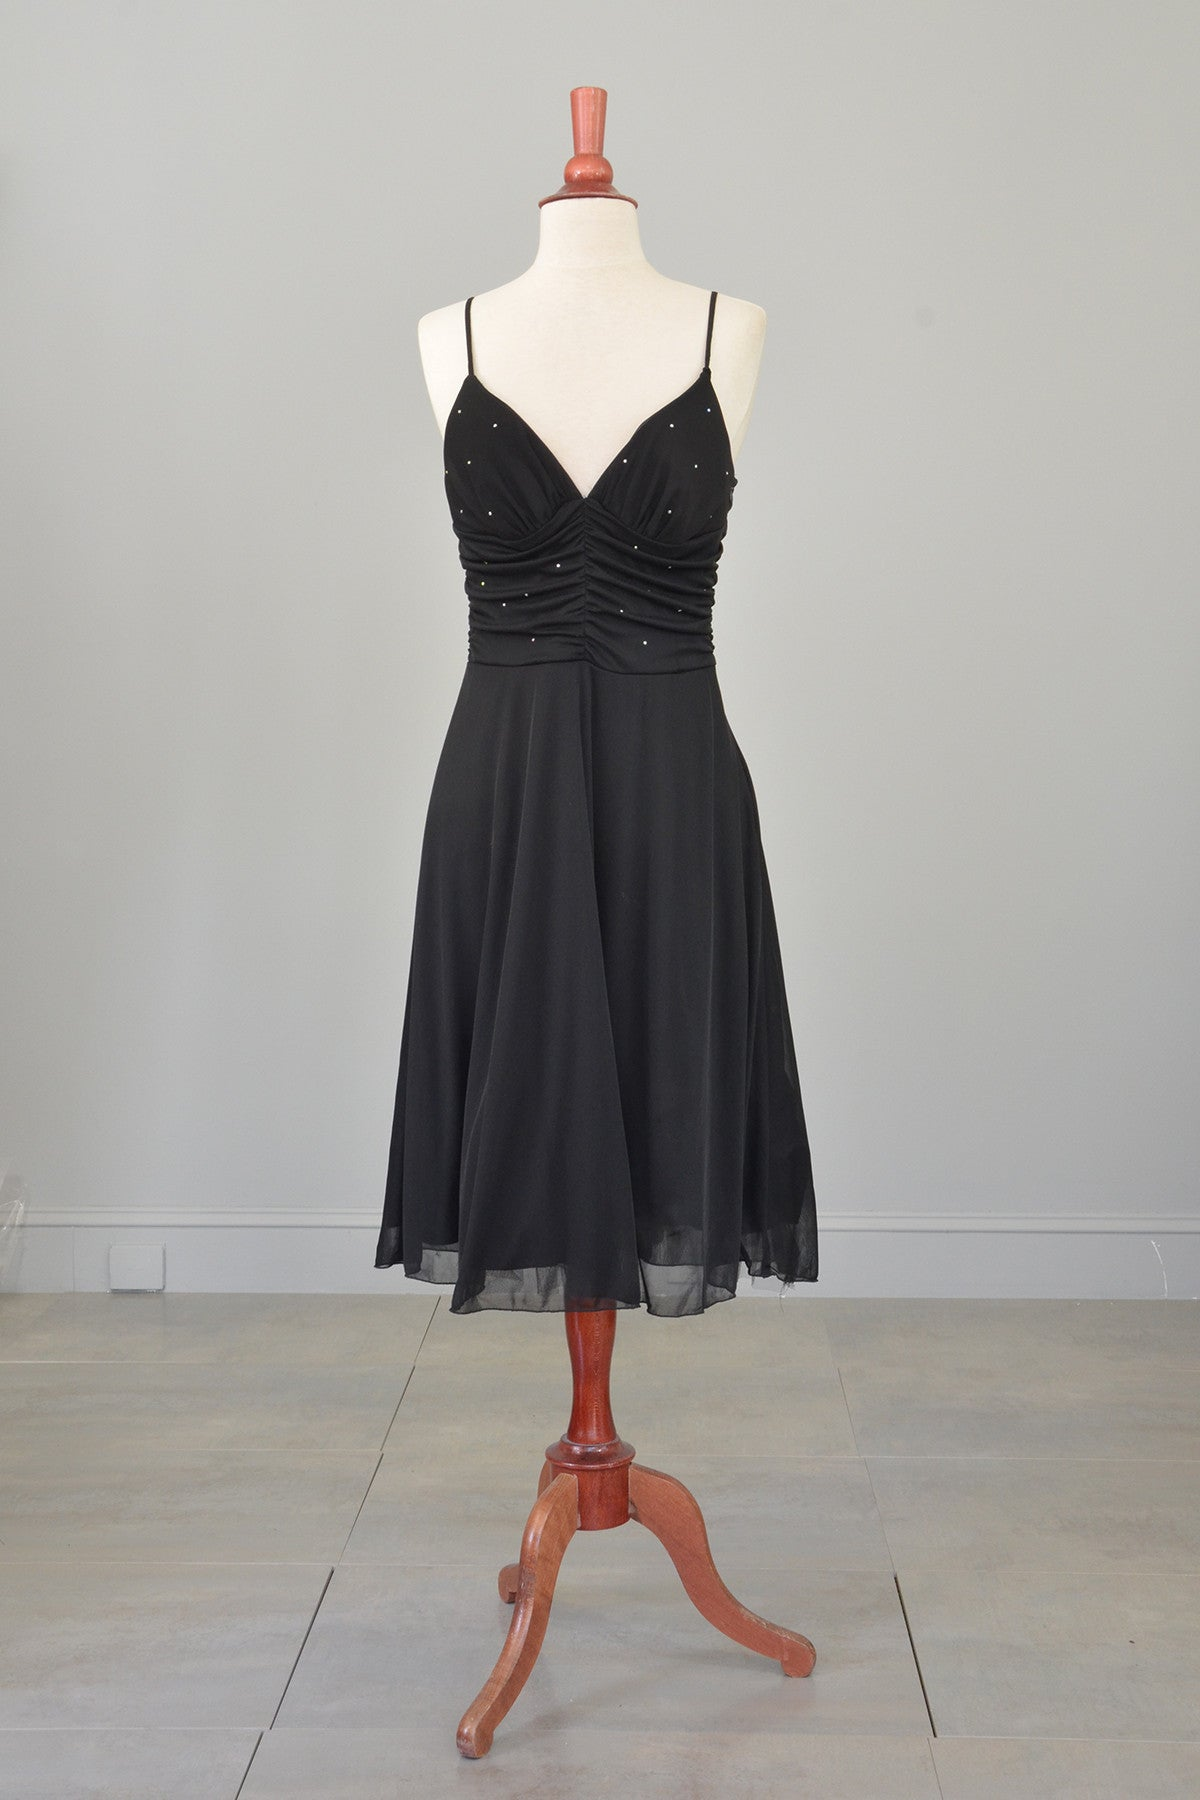 70s 80s Black Rhinestone Bodice Cocktail Party Dress